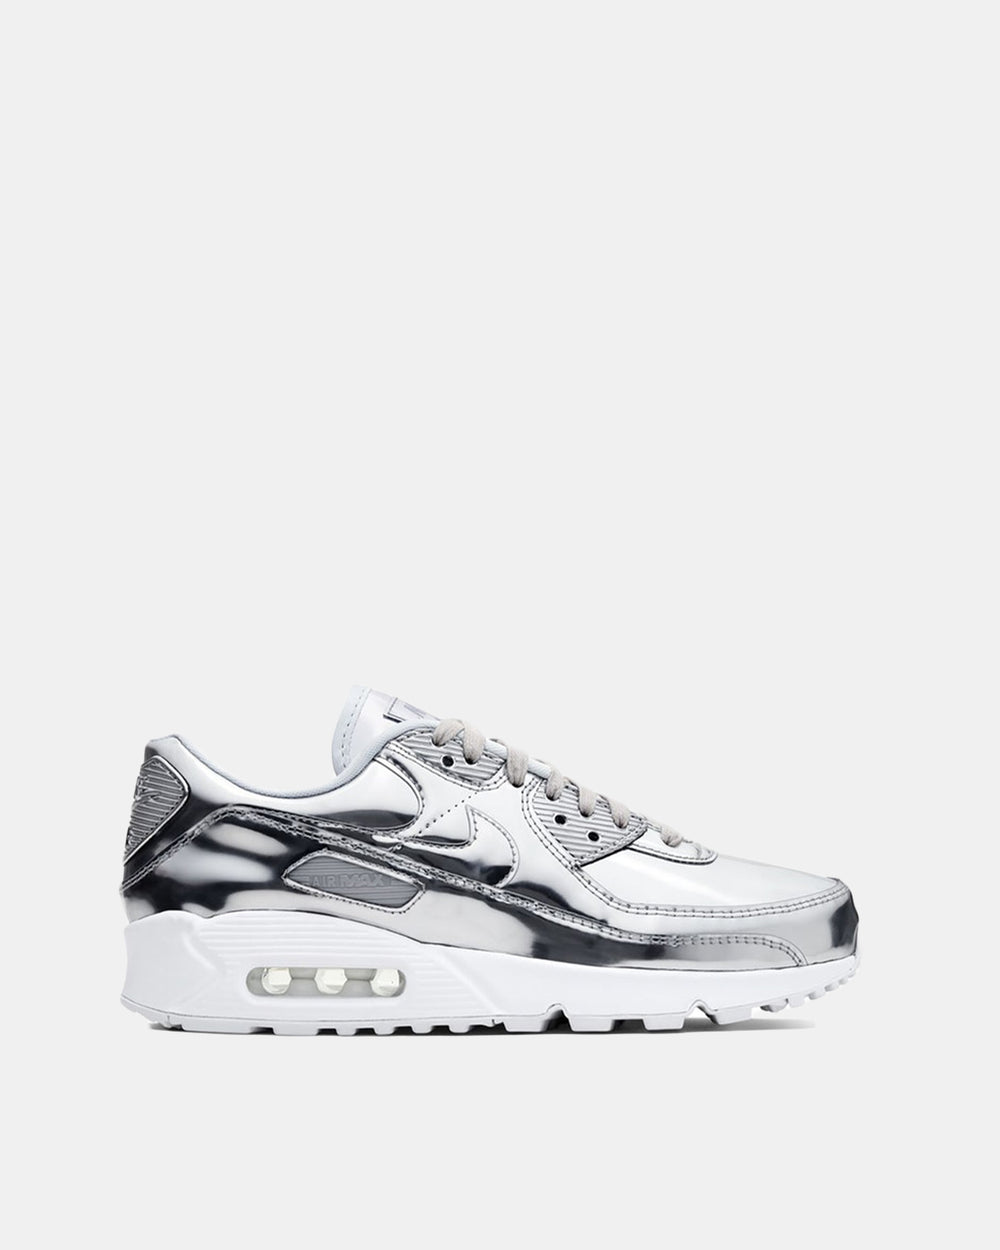 Women's Air Max 90 SP (Chrome | Pure Platinum | White)